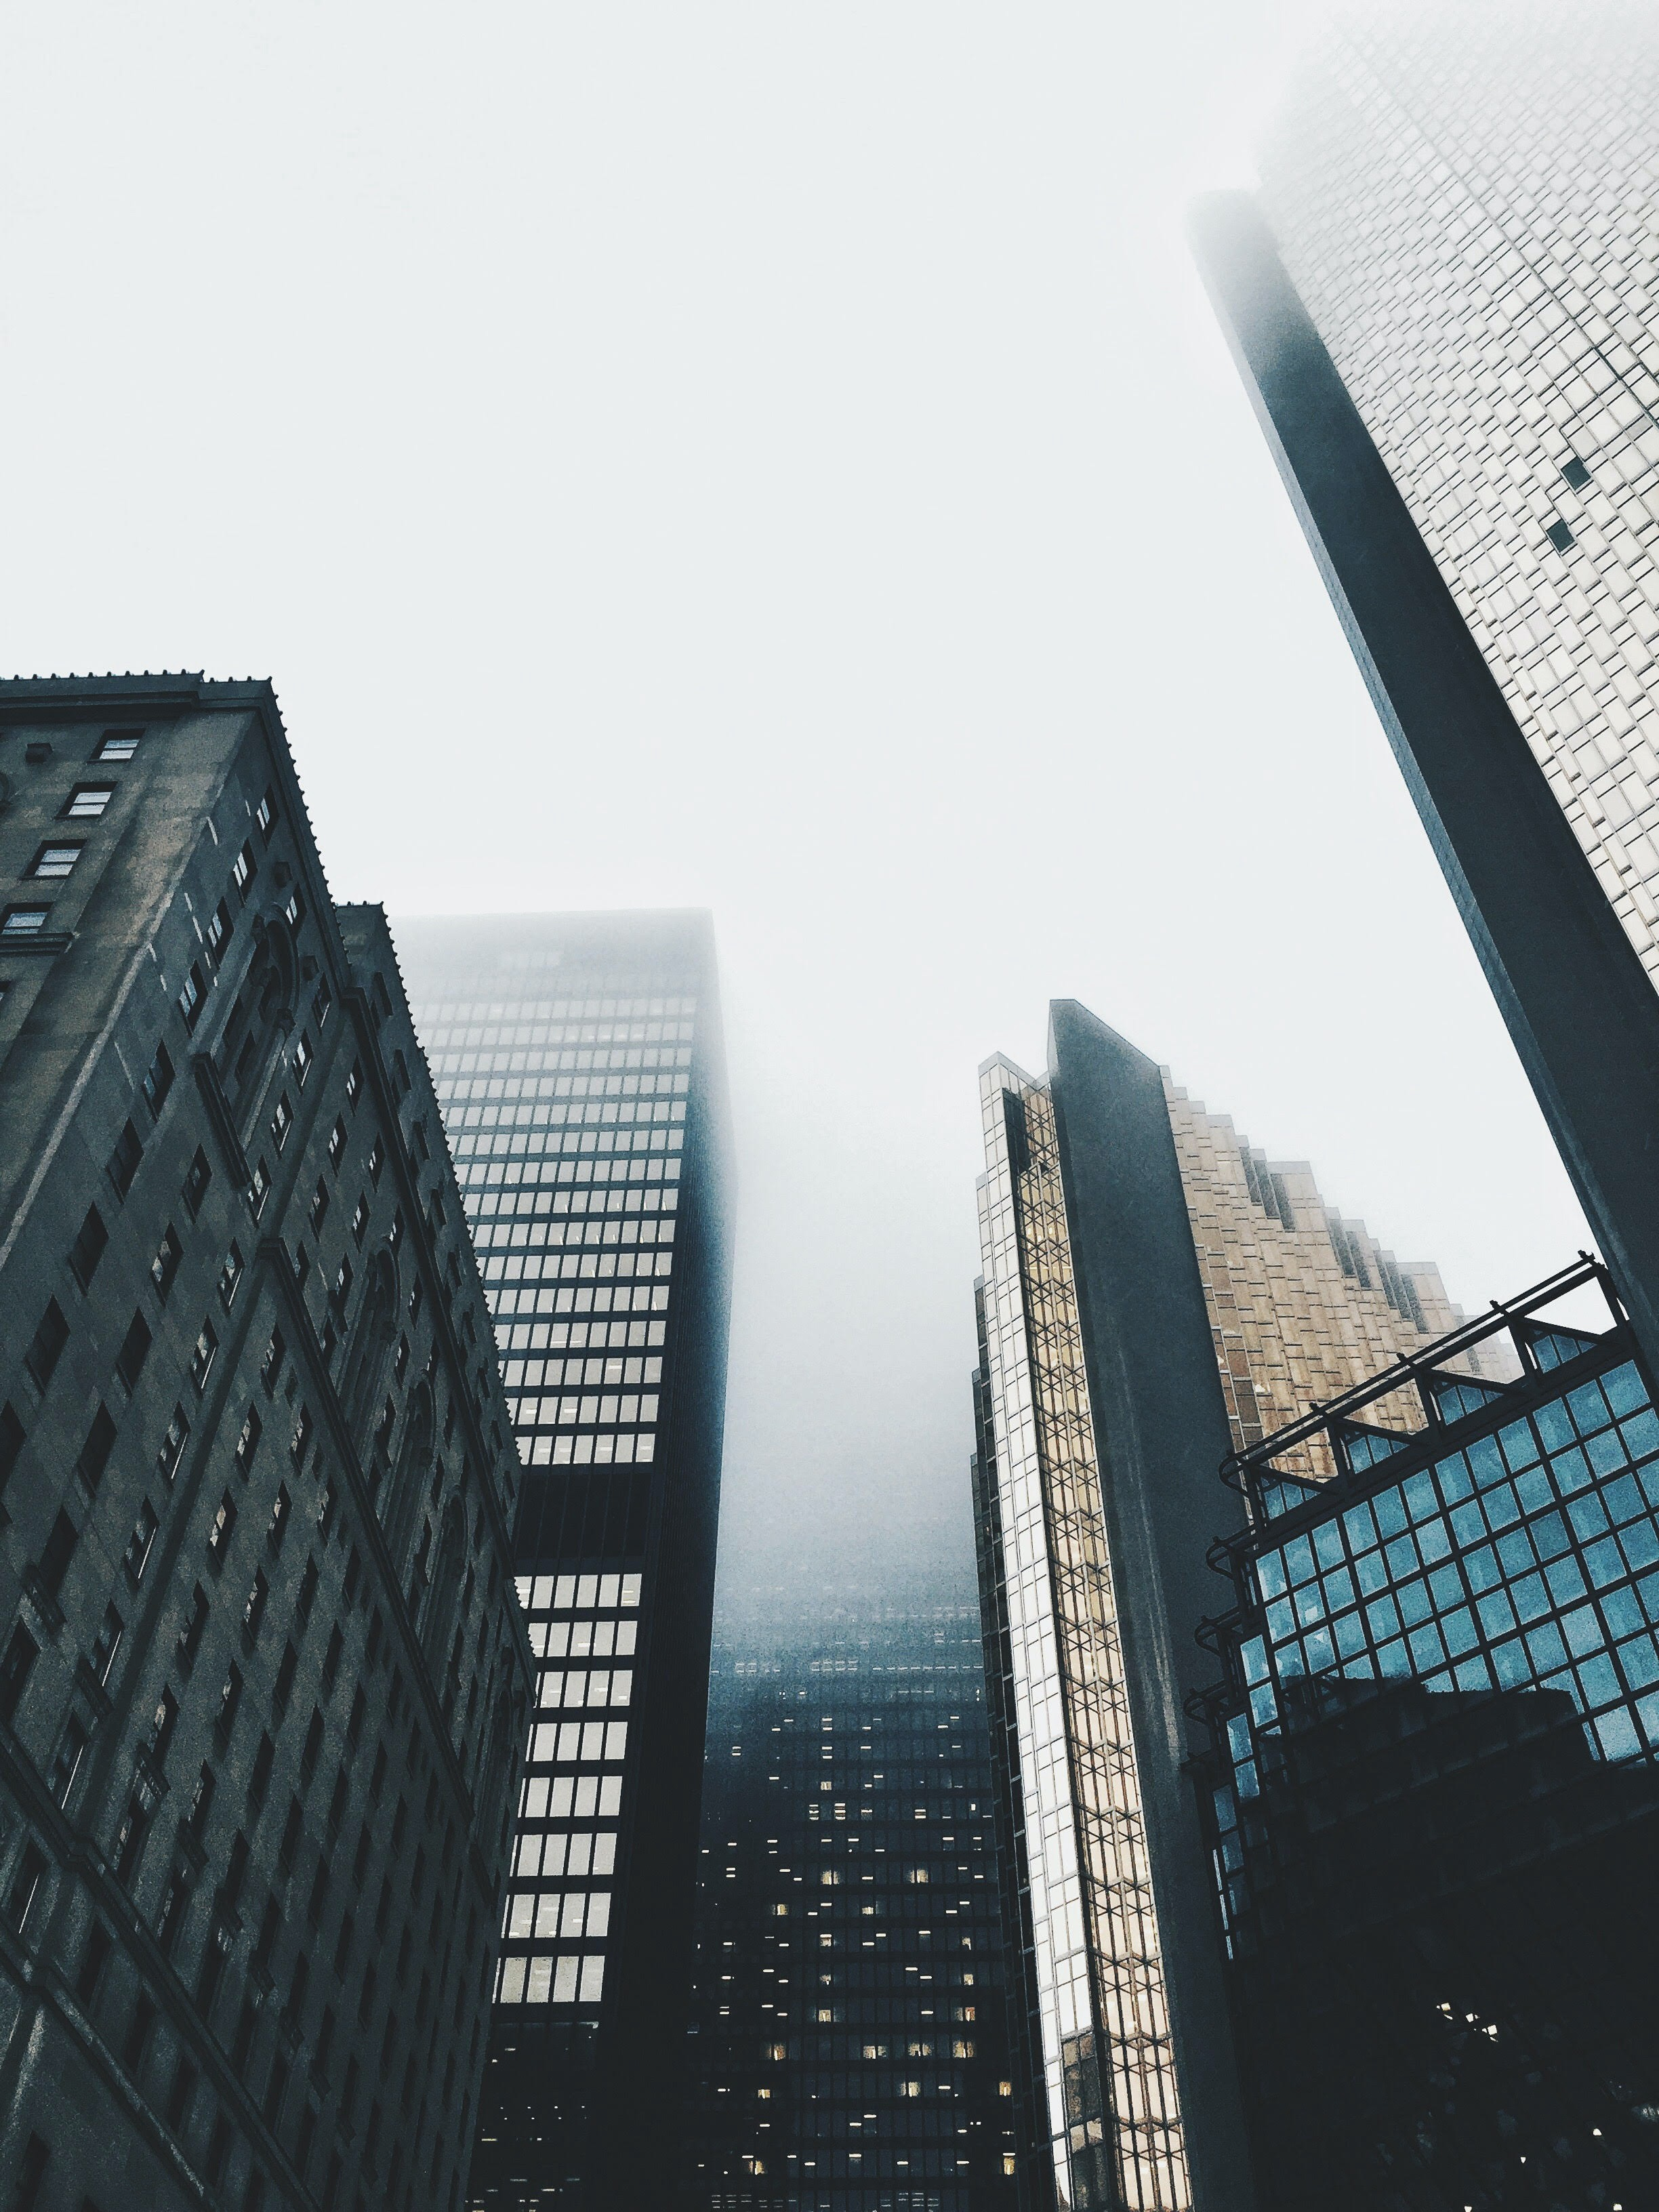 View of skyscrapers, from the ground, looking up.